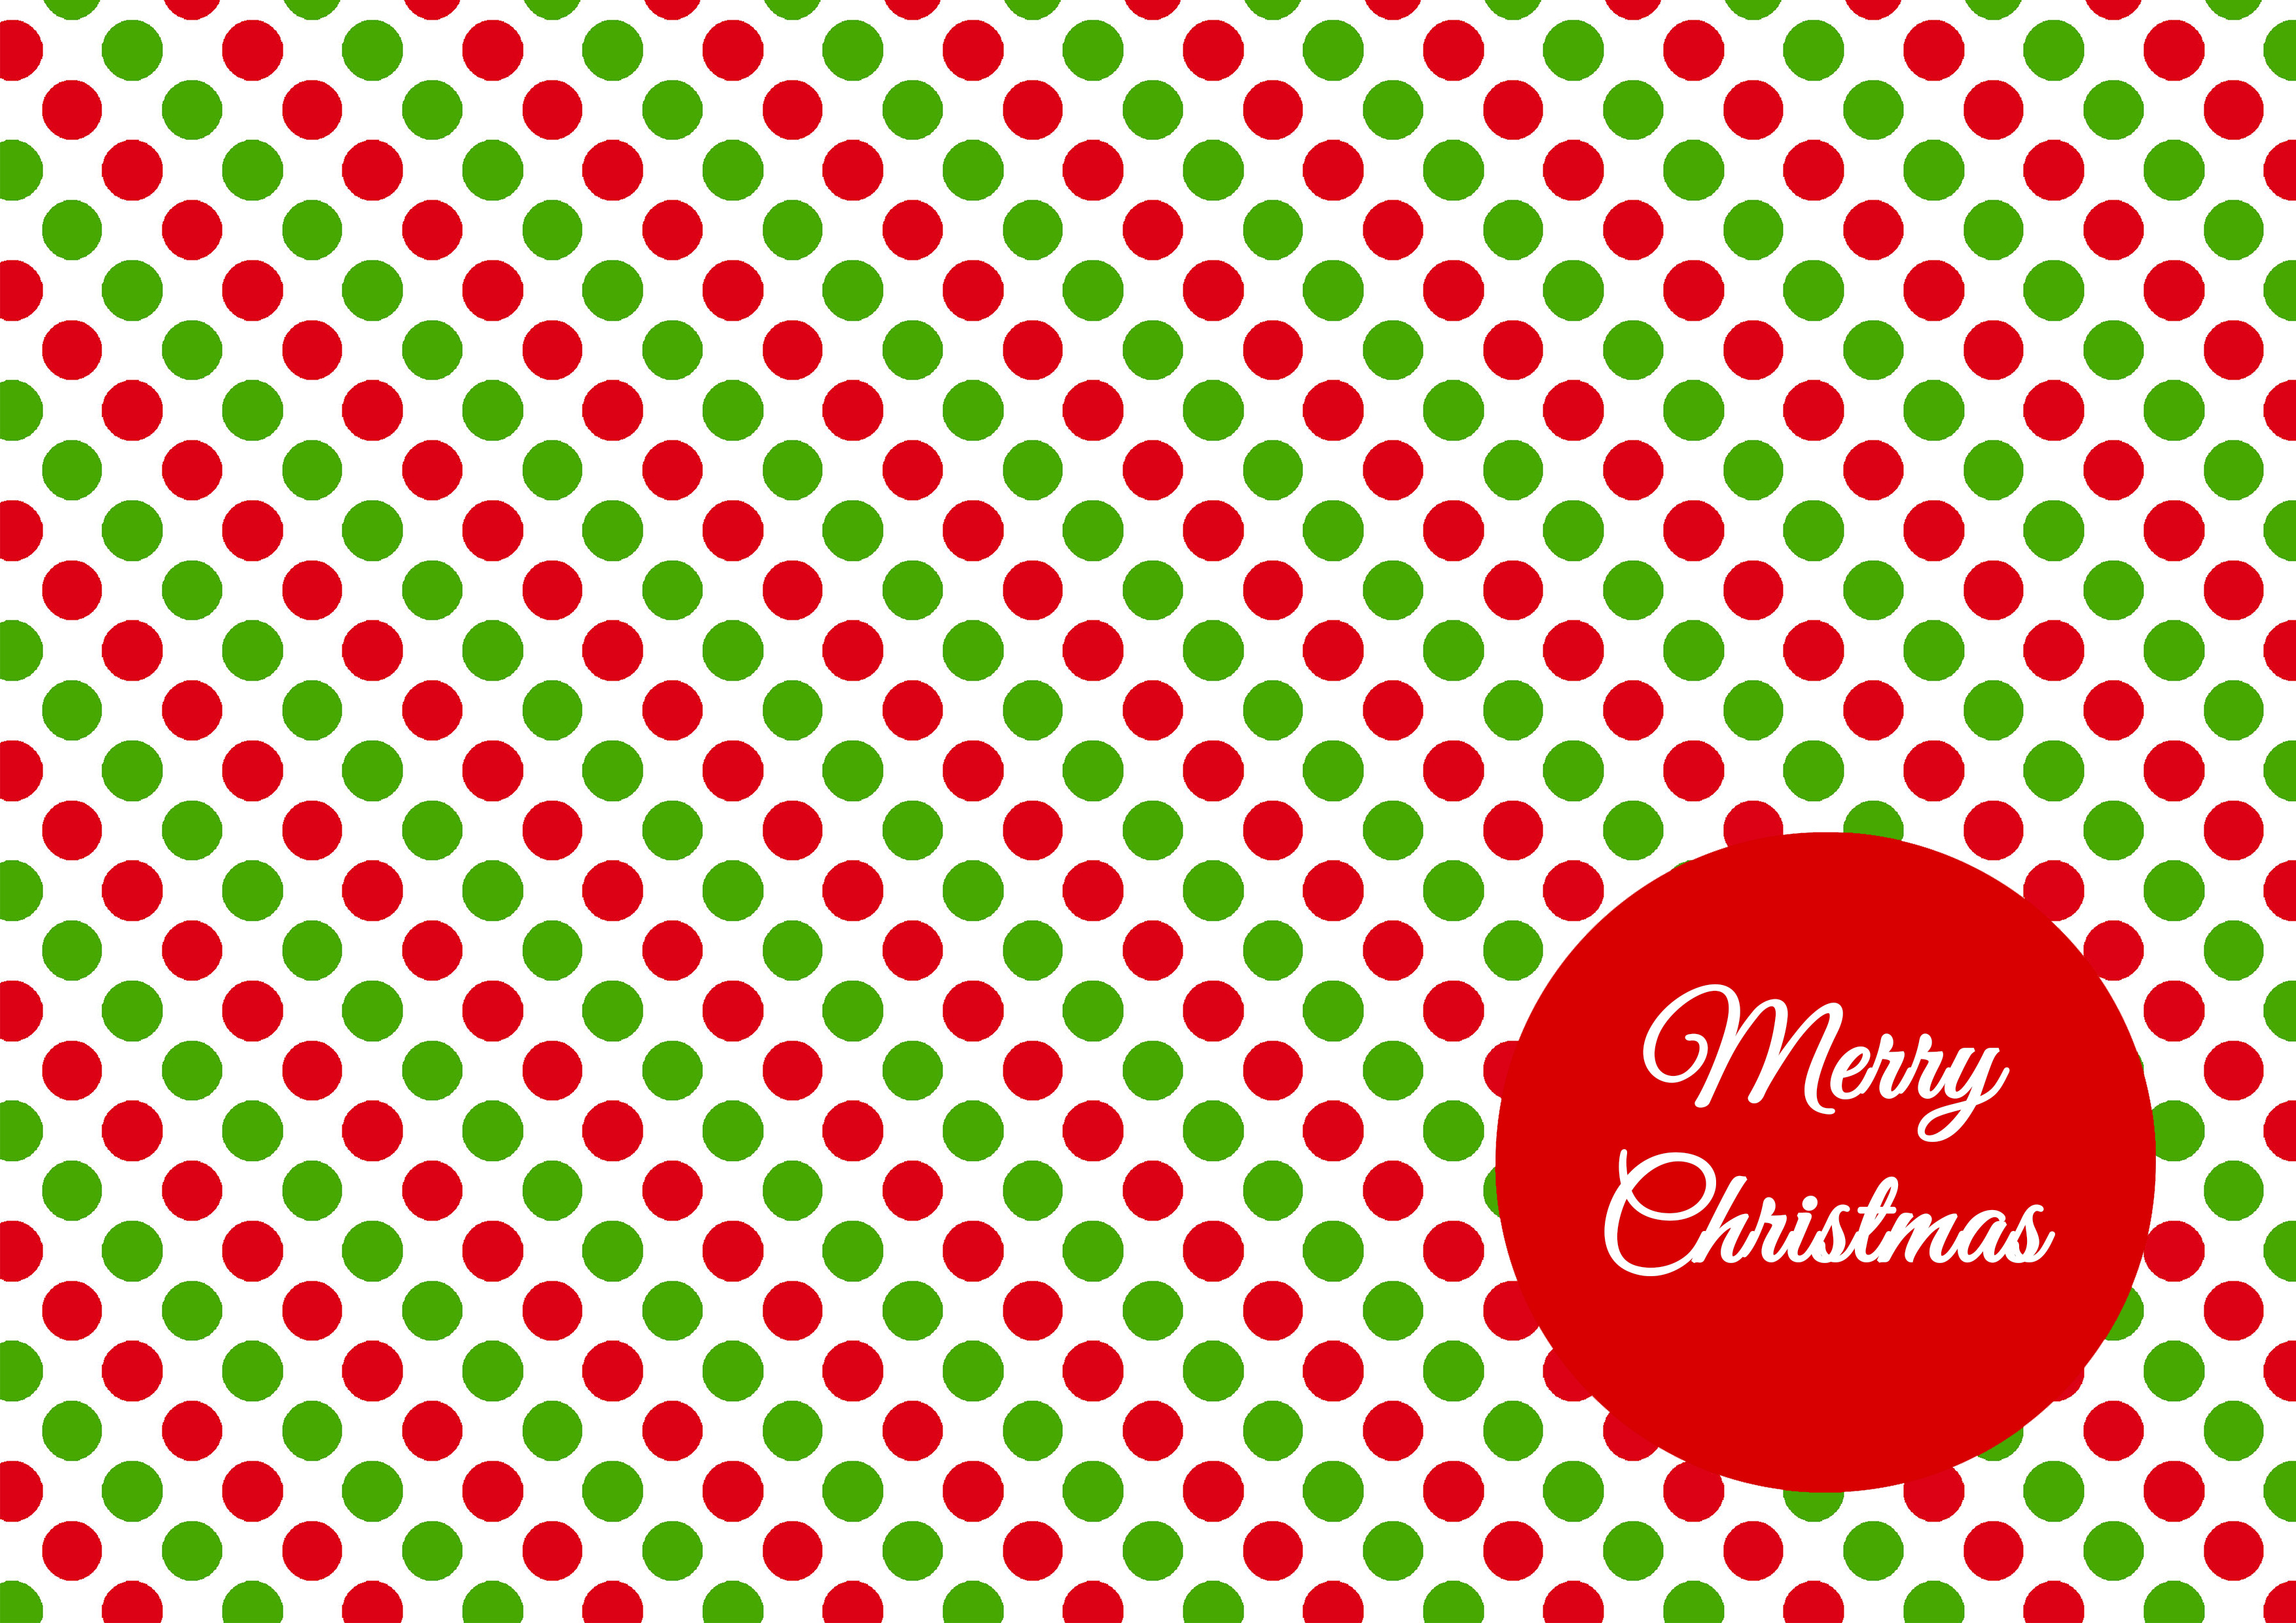 FREE Christmas Desktop BackgroundsWallpapers AllAboutTheHouse 3508x2480